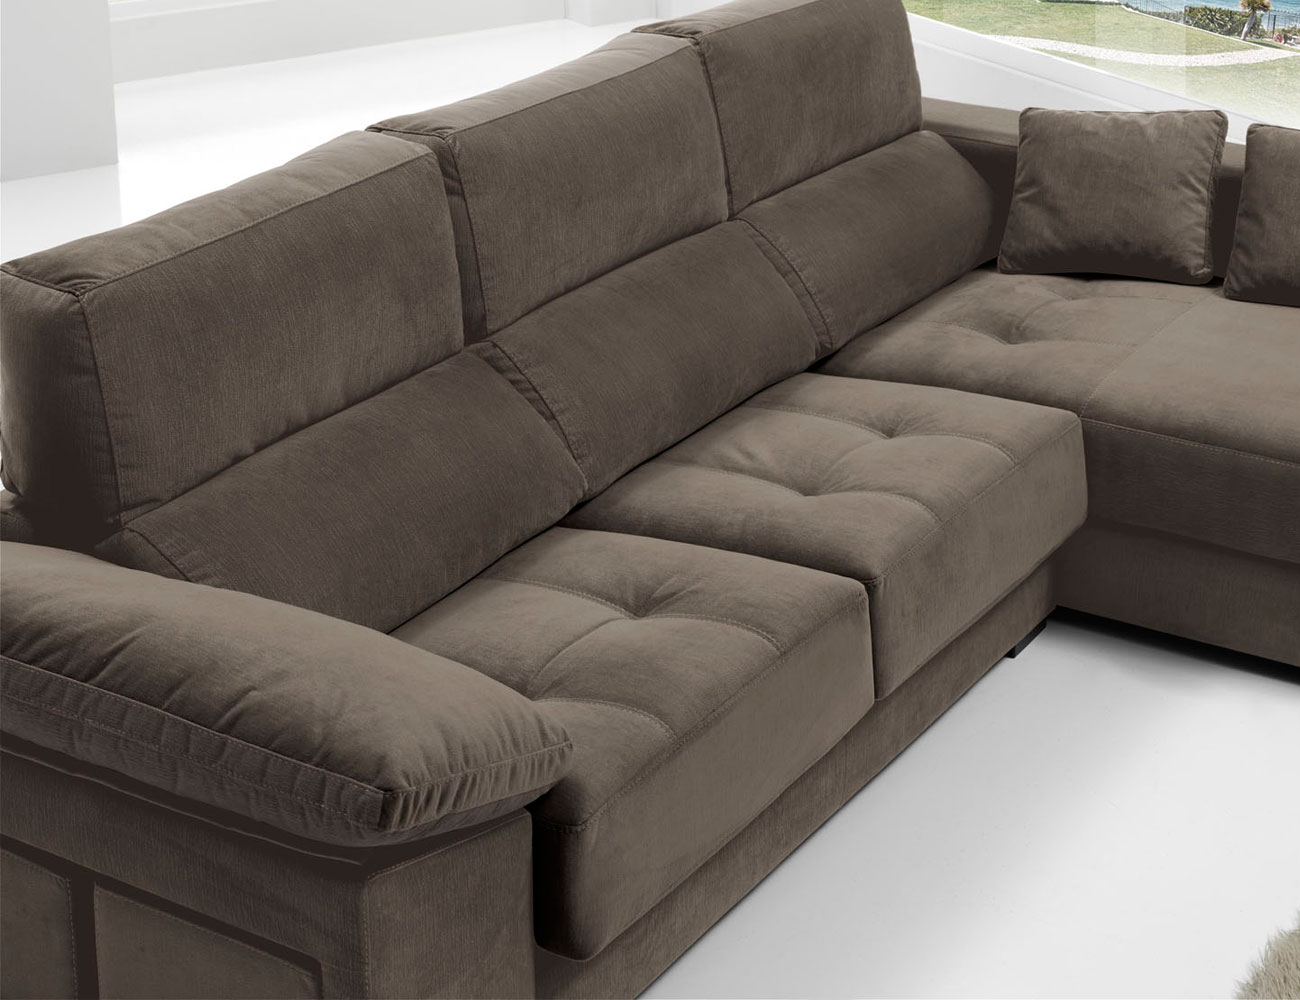 Sofa chaiselongue anti manchas bering pouf 249